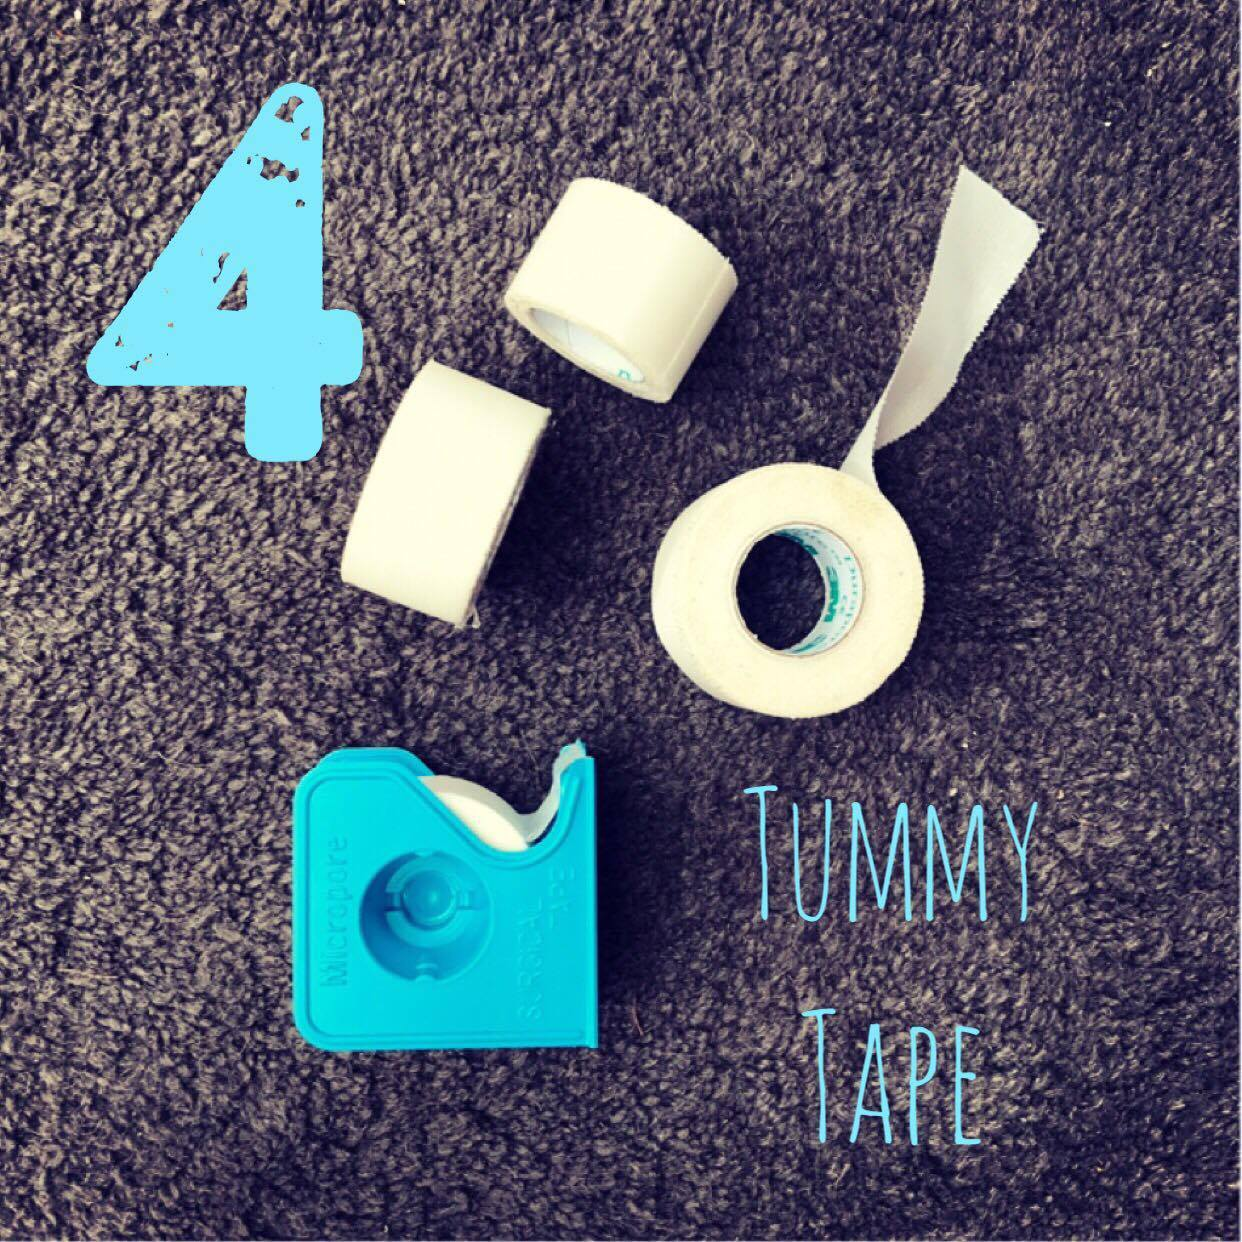 4. Tummy Tape  We have been playing around with Arlo's schedule a bit but for the most part, he does a few hour long feeds through out the day and then a continuous feed all night long. Because of this, we were leaving his extension taped to his tummy between feeds. This made it much easier on his sensitive skin. We also make sure to tape it down over night when he's rolling around in his bed. Tapes i would recommend are the typical  silk tape  that DME companies supply but can also be found on Amazon and in the hospitals. We 'clean the room' of all supplies when we leave the hospital and have a nice little supply going. When Arlo's tummy gets really irritated or red, we switch taping side to side and then also use a  paper tape  that is less sticky and intense. Once his tummy is healed, we switch back because he's a toddler and has been very grabby lately.